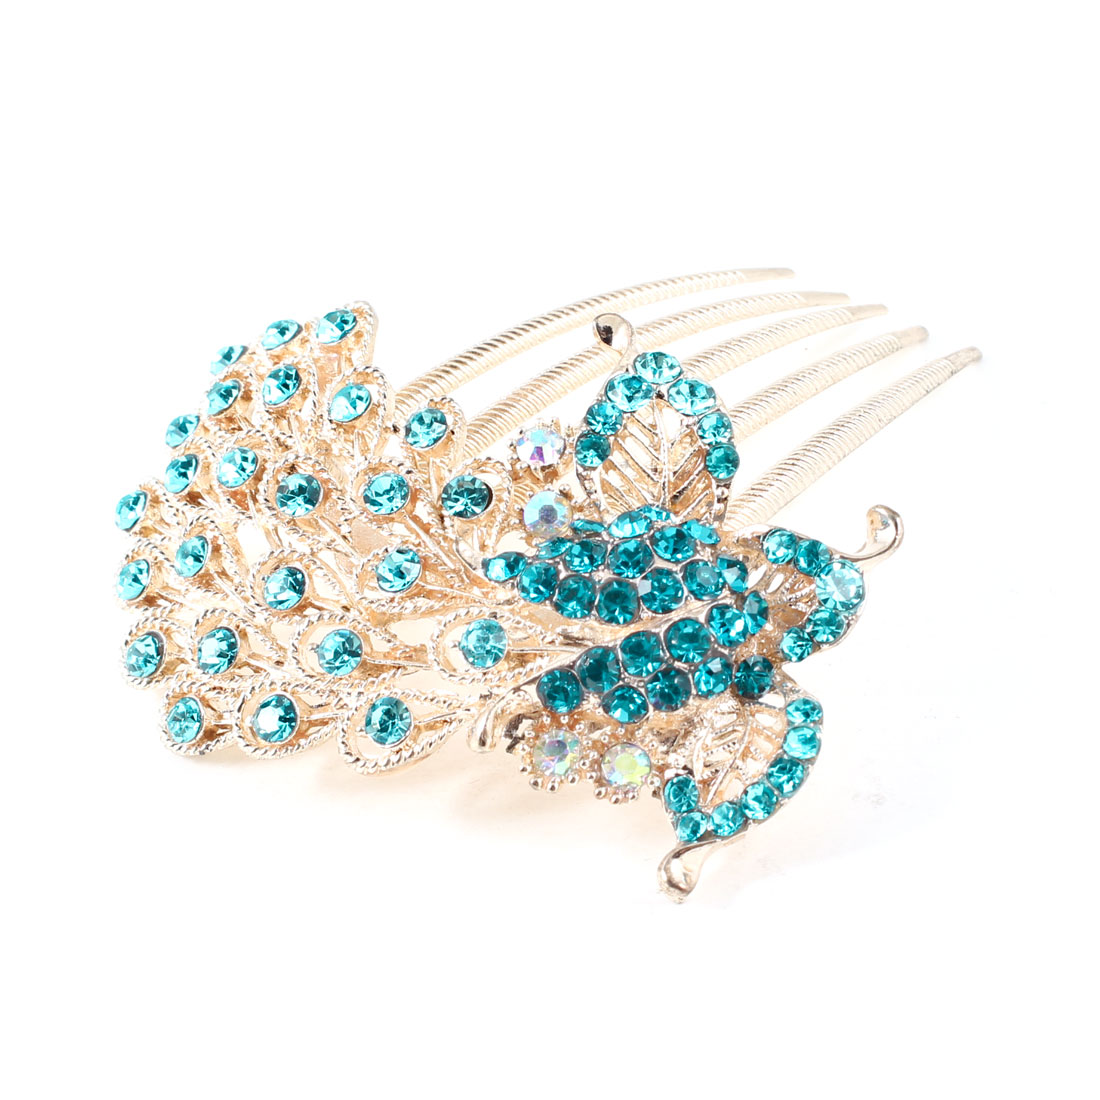 Blue Rhinestones Inlaid Gold Tone Plastic Hair Comb Clip for Lady